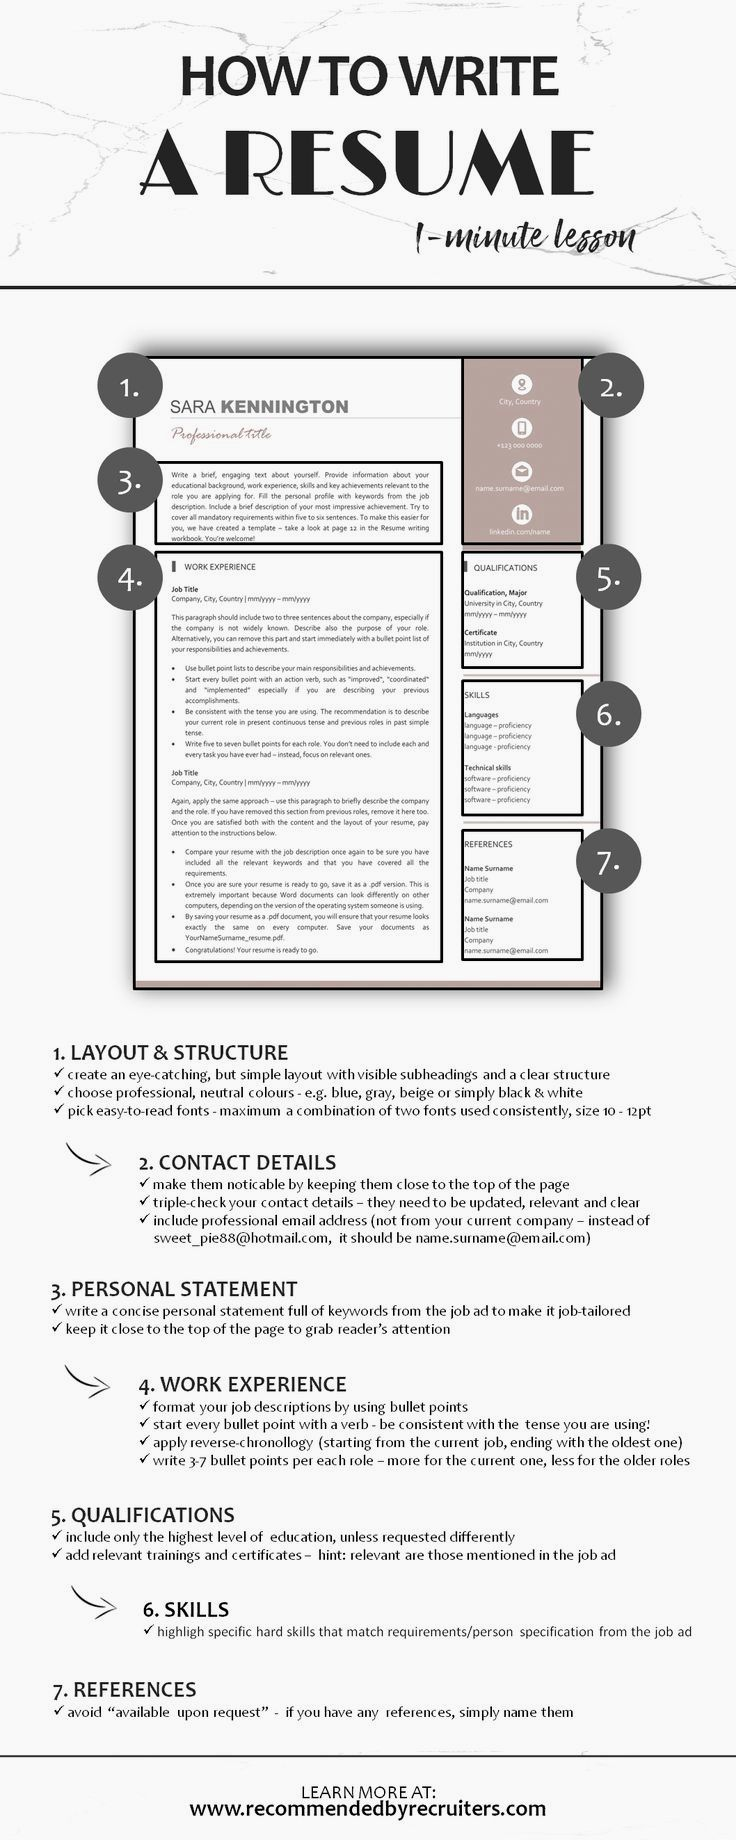 1 Minute Lesson How To Write A Resume Learn How To Create A